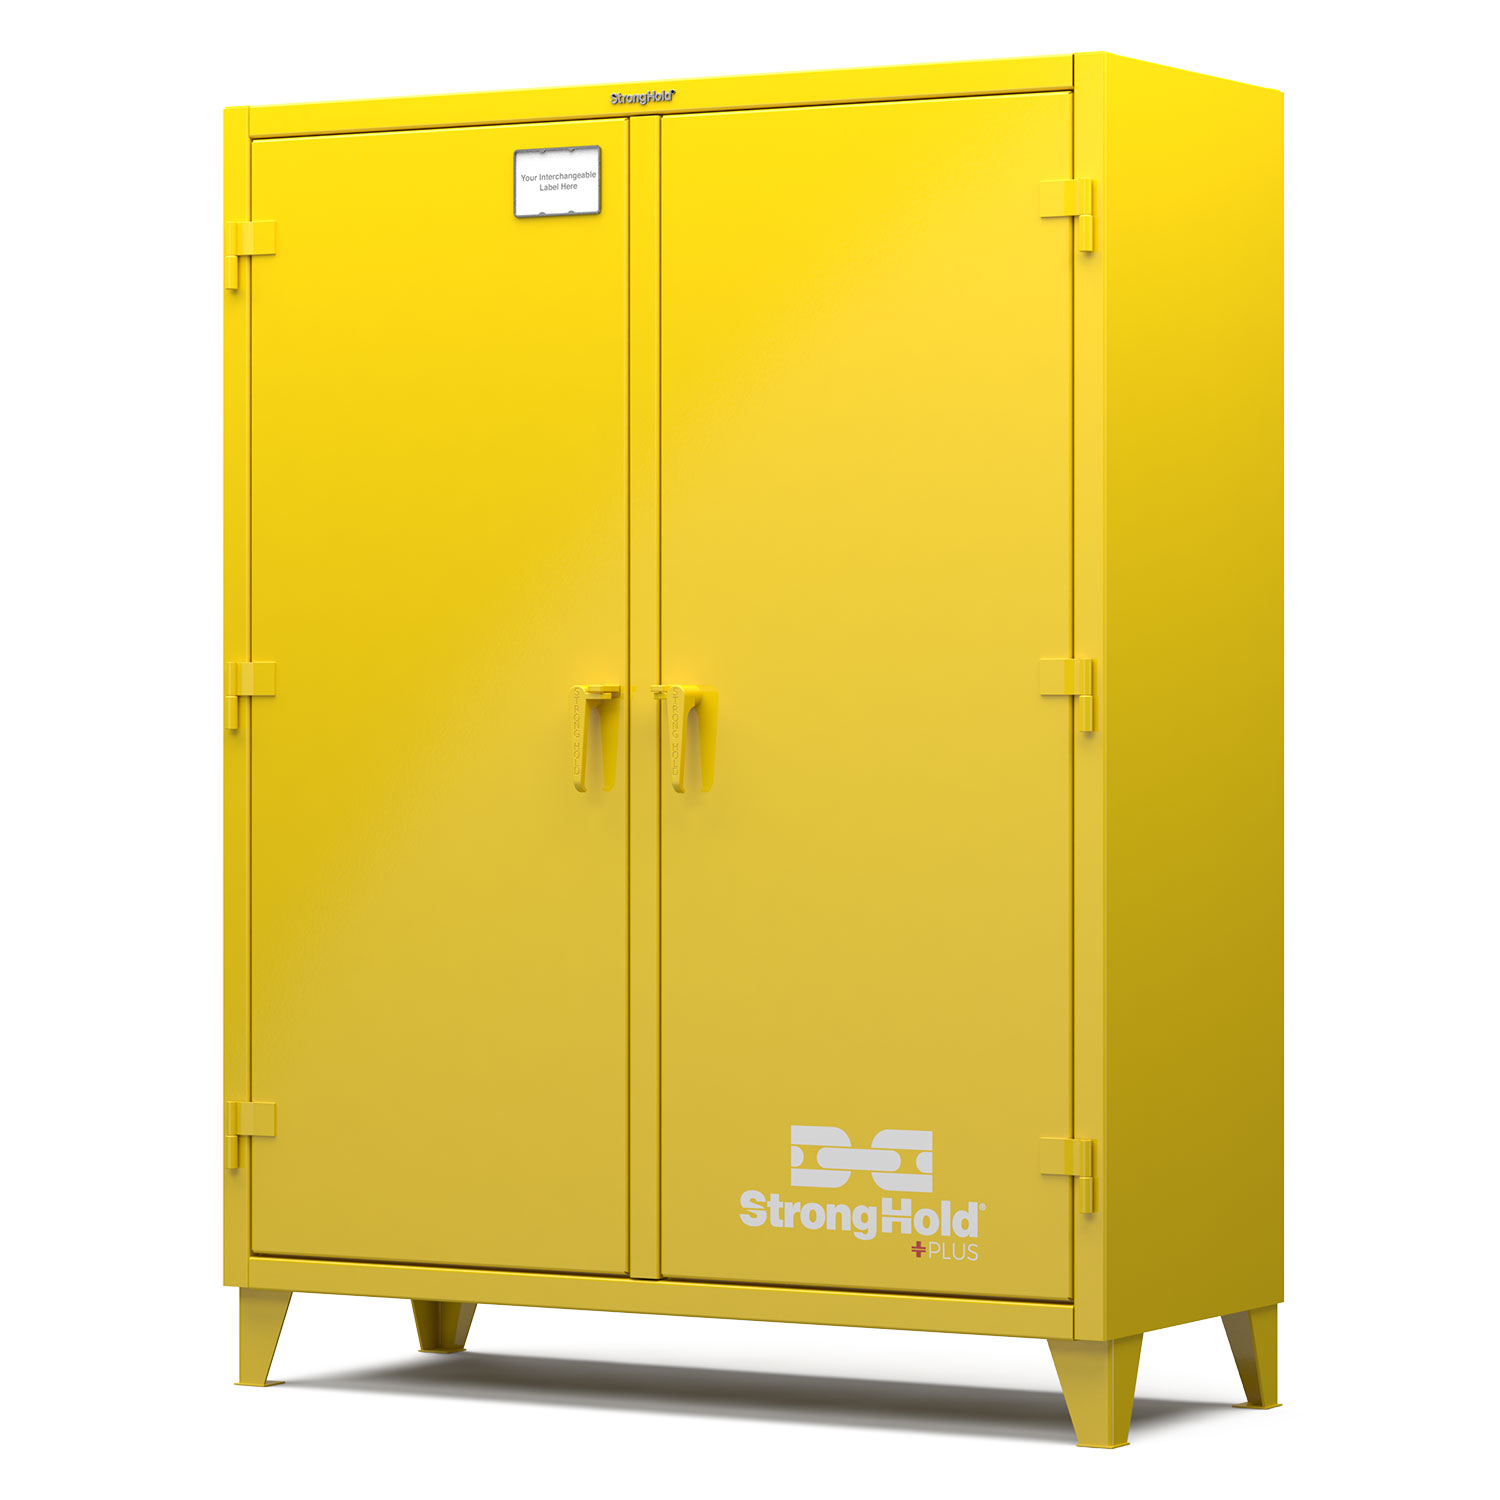 strong filing stronghold cabinets product image systems hold all storage cabinet copy